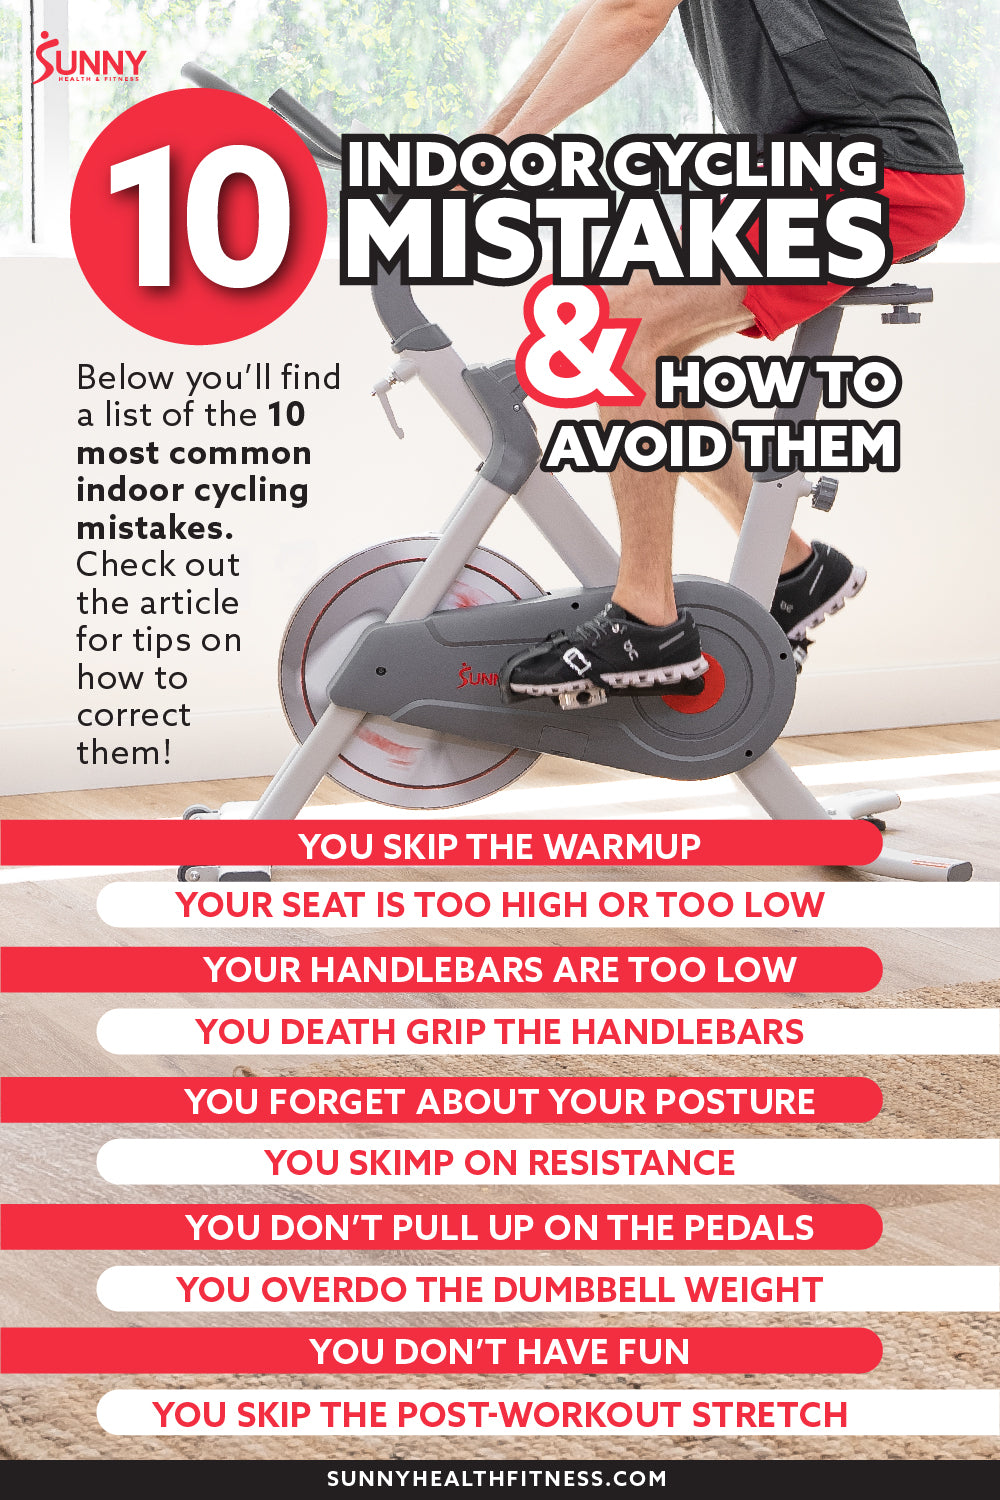 How to Fix Top 10 Indoor Cycling Mistakes